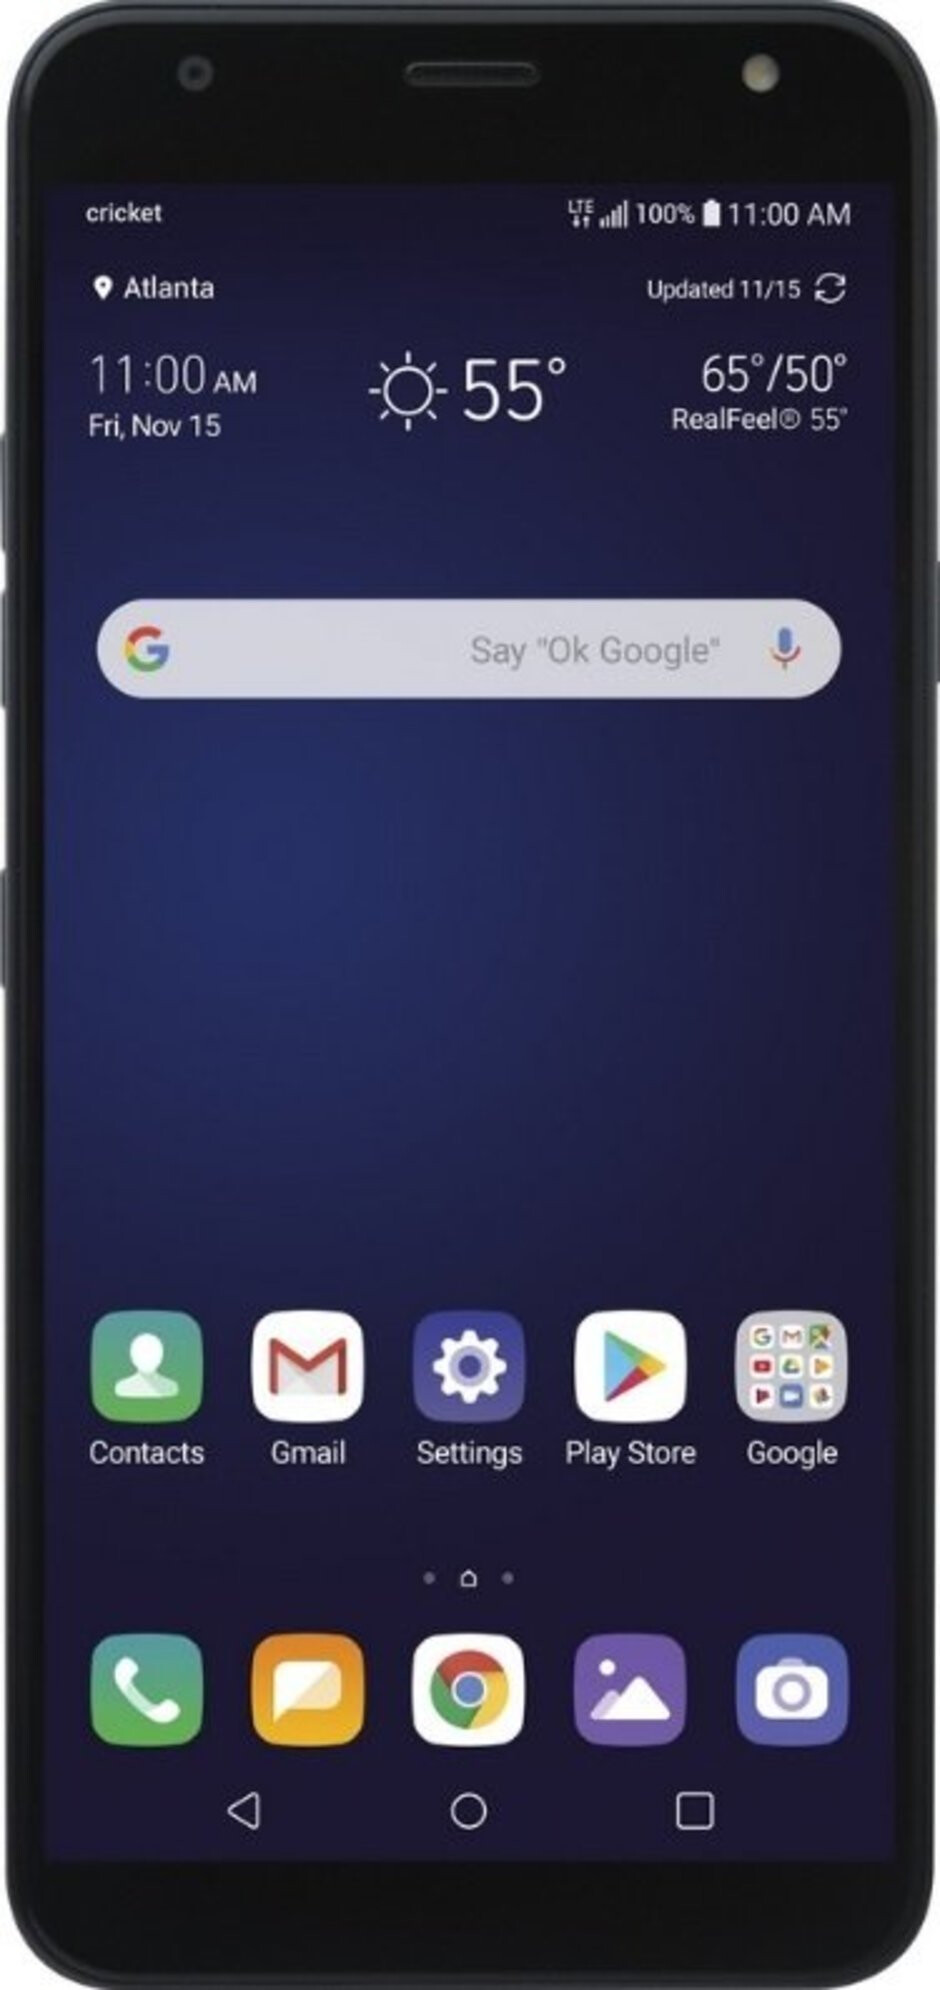 Render of the upcoming LG Harmony 3 - This is the LG Harmony 3 for Cricket Wireless